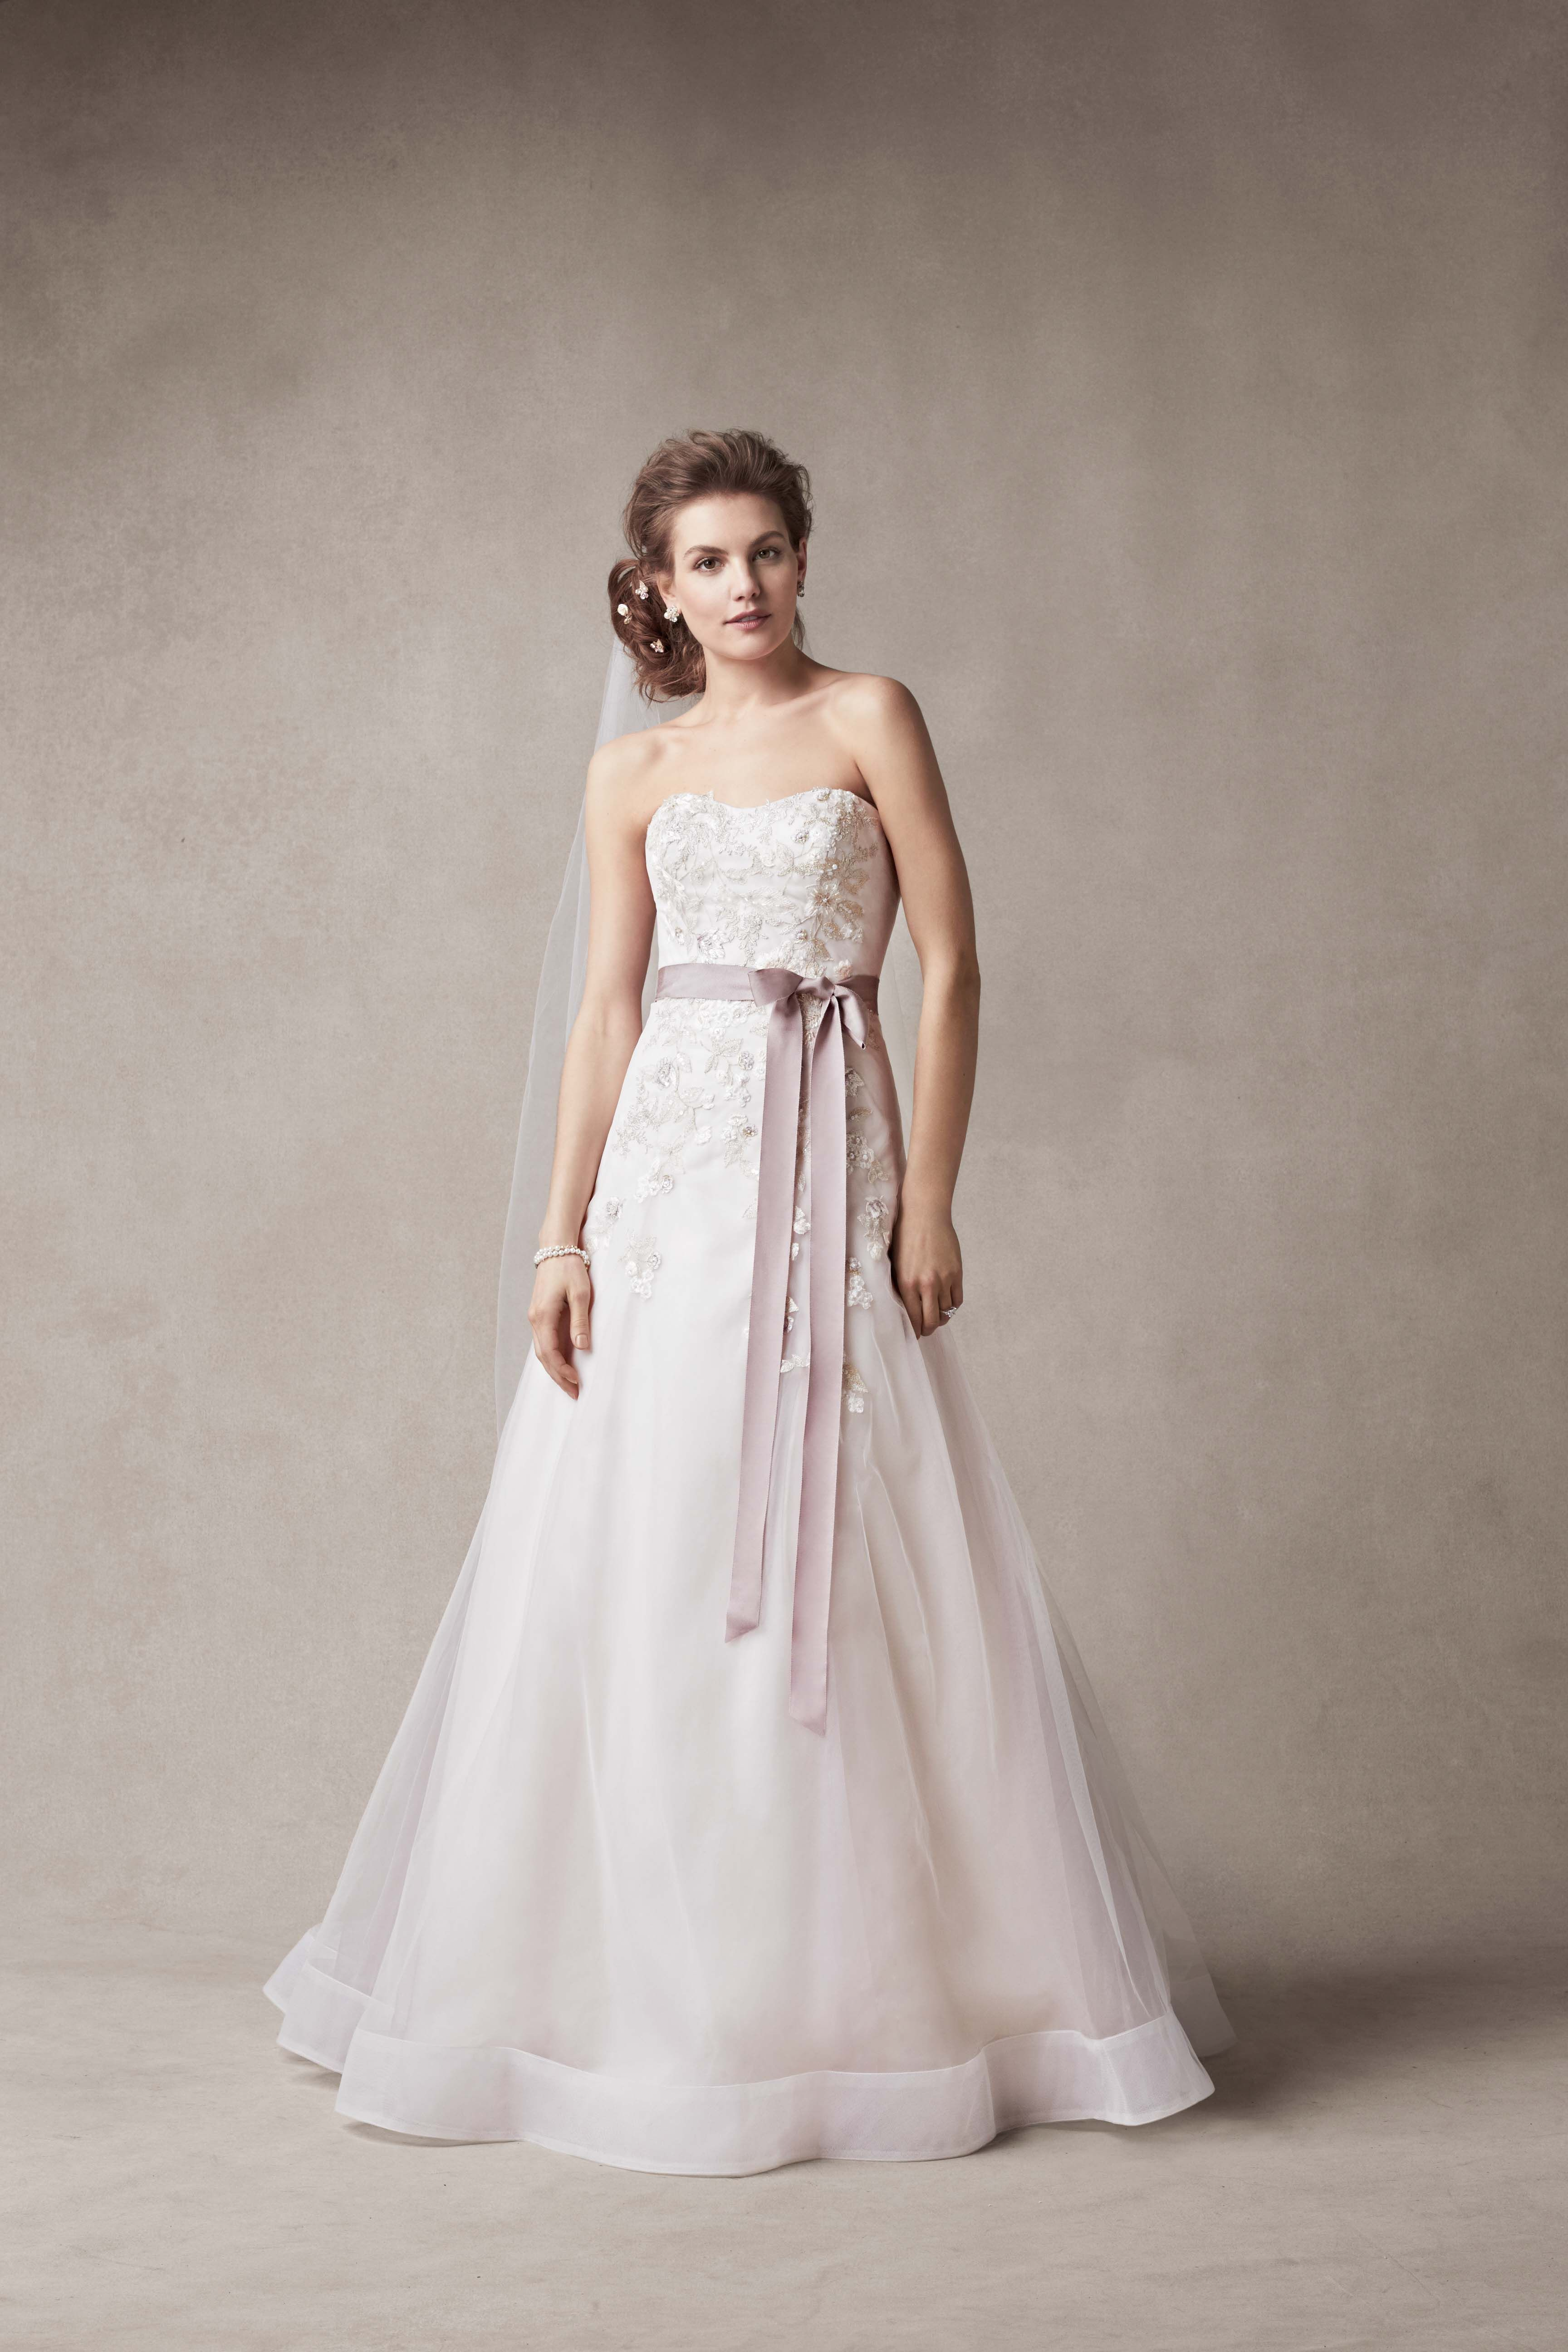 What's Hot in Bridal Fashion for Fall 2014